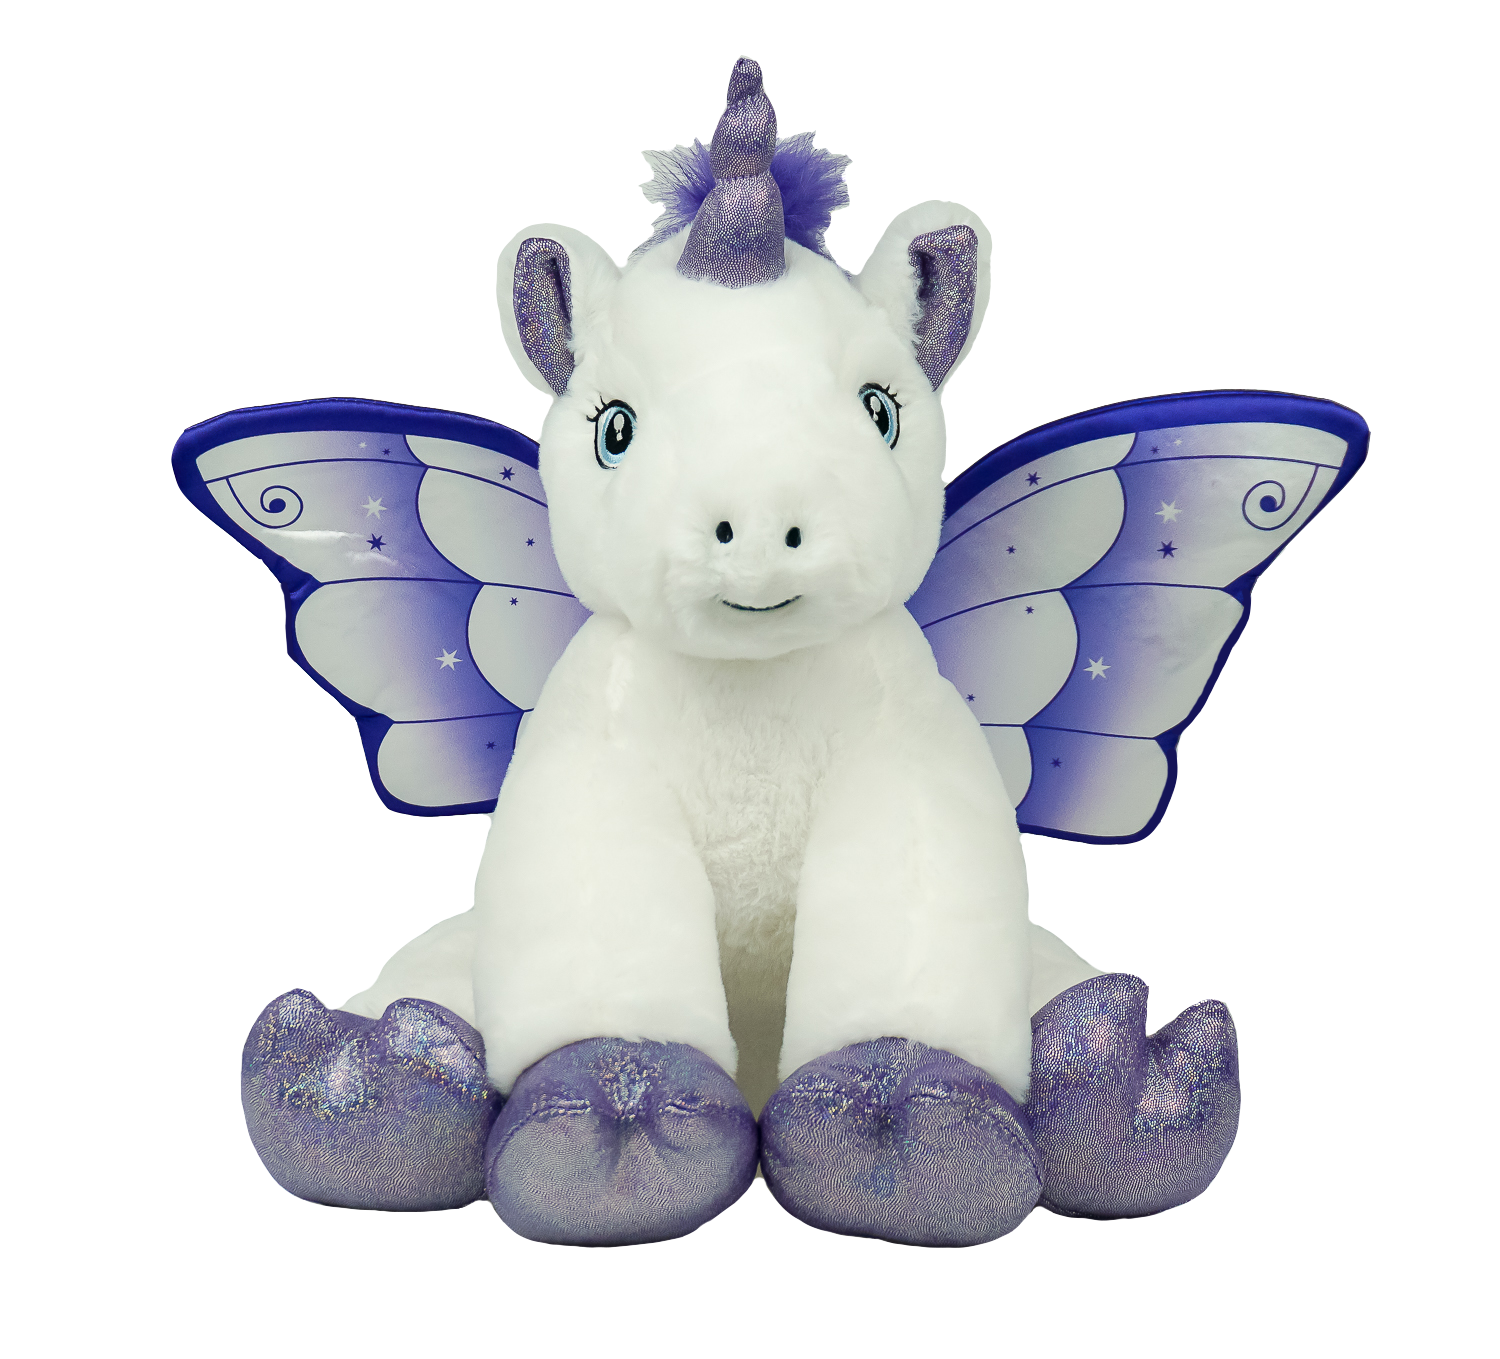 60865 - 16 Inch - Crystal The Unicorn - Kit or Stuffed - Standard Name